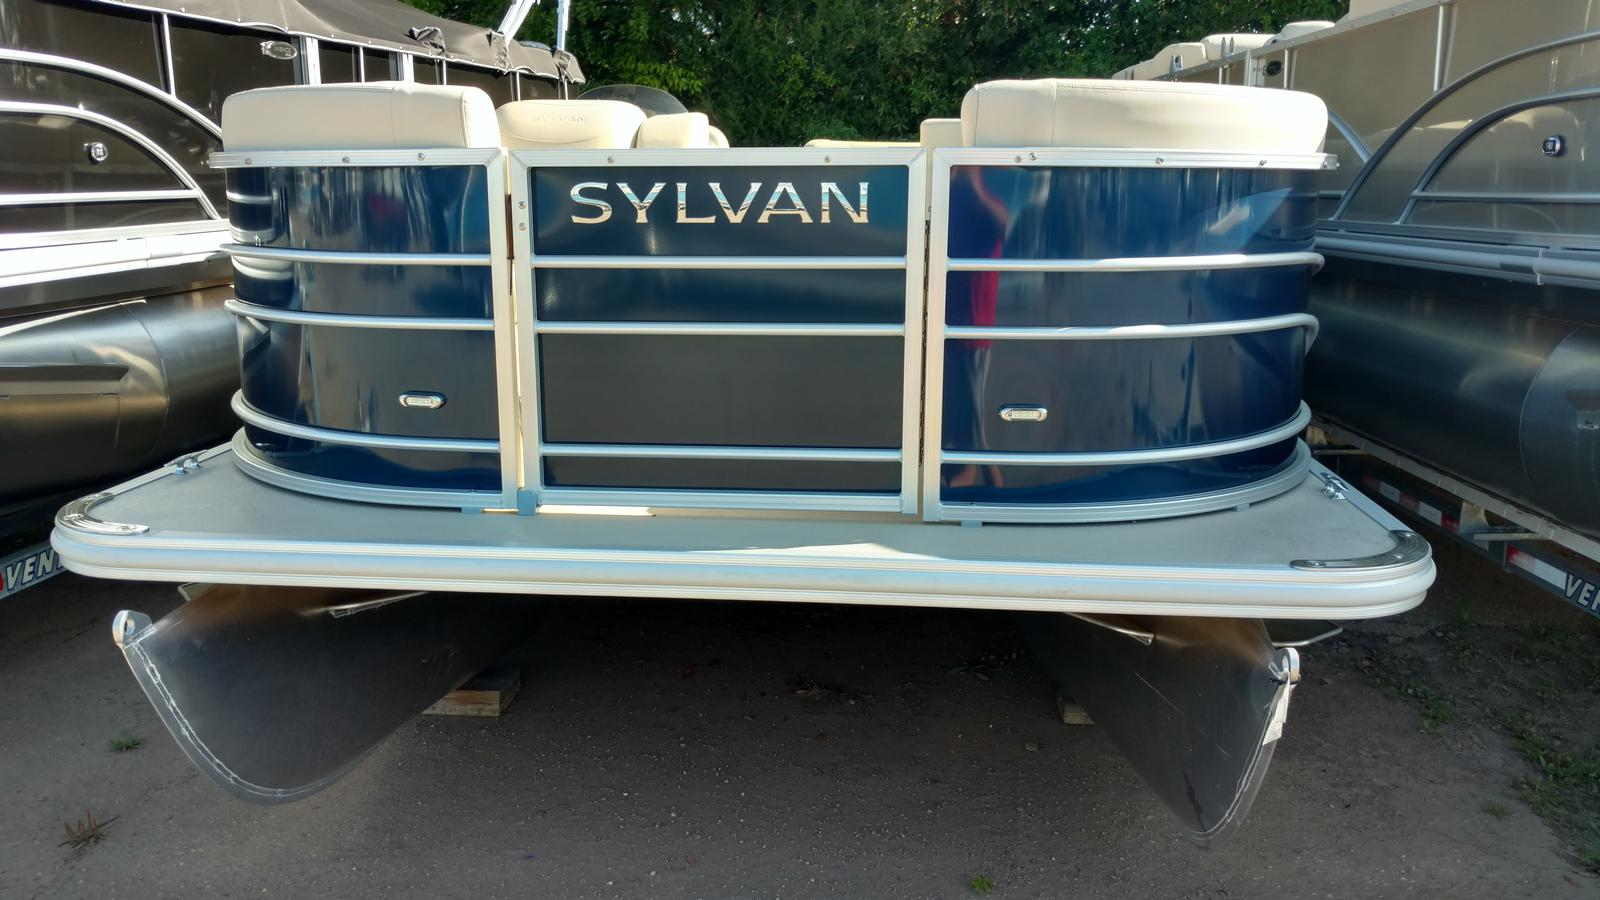 Sylvan 8520 mirage cruise boats for sale for Syvlan